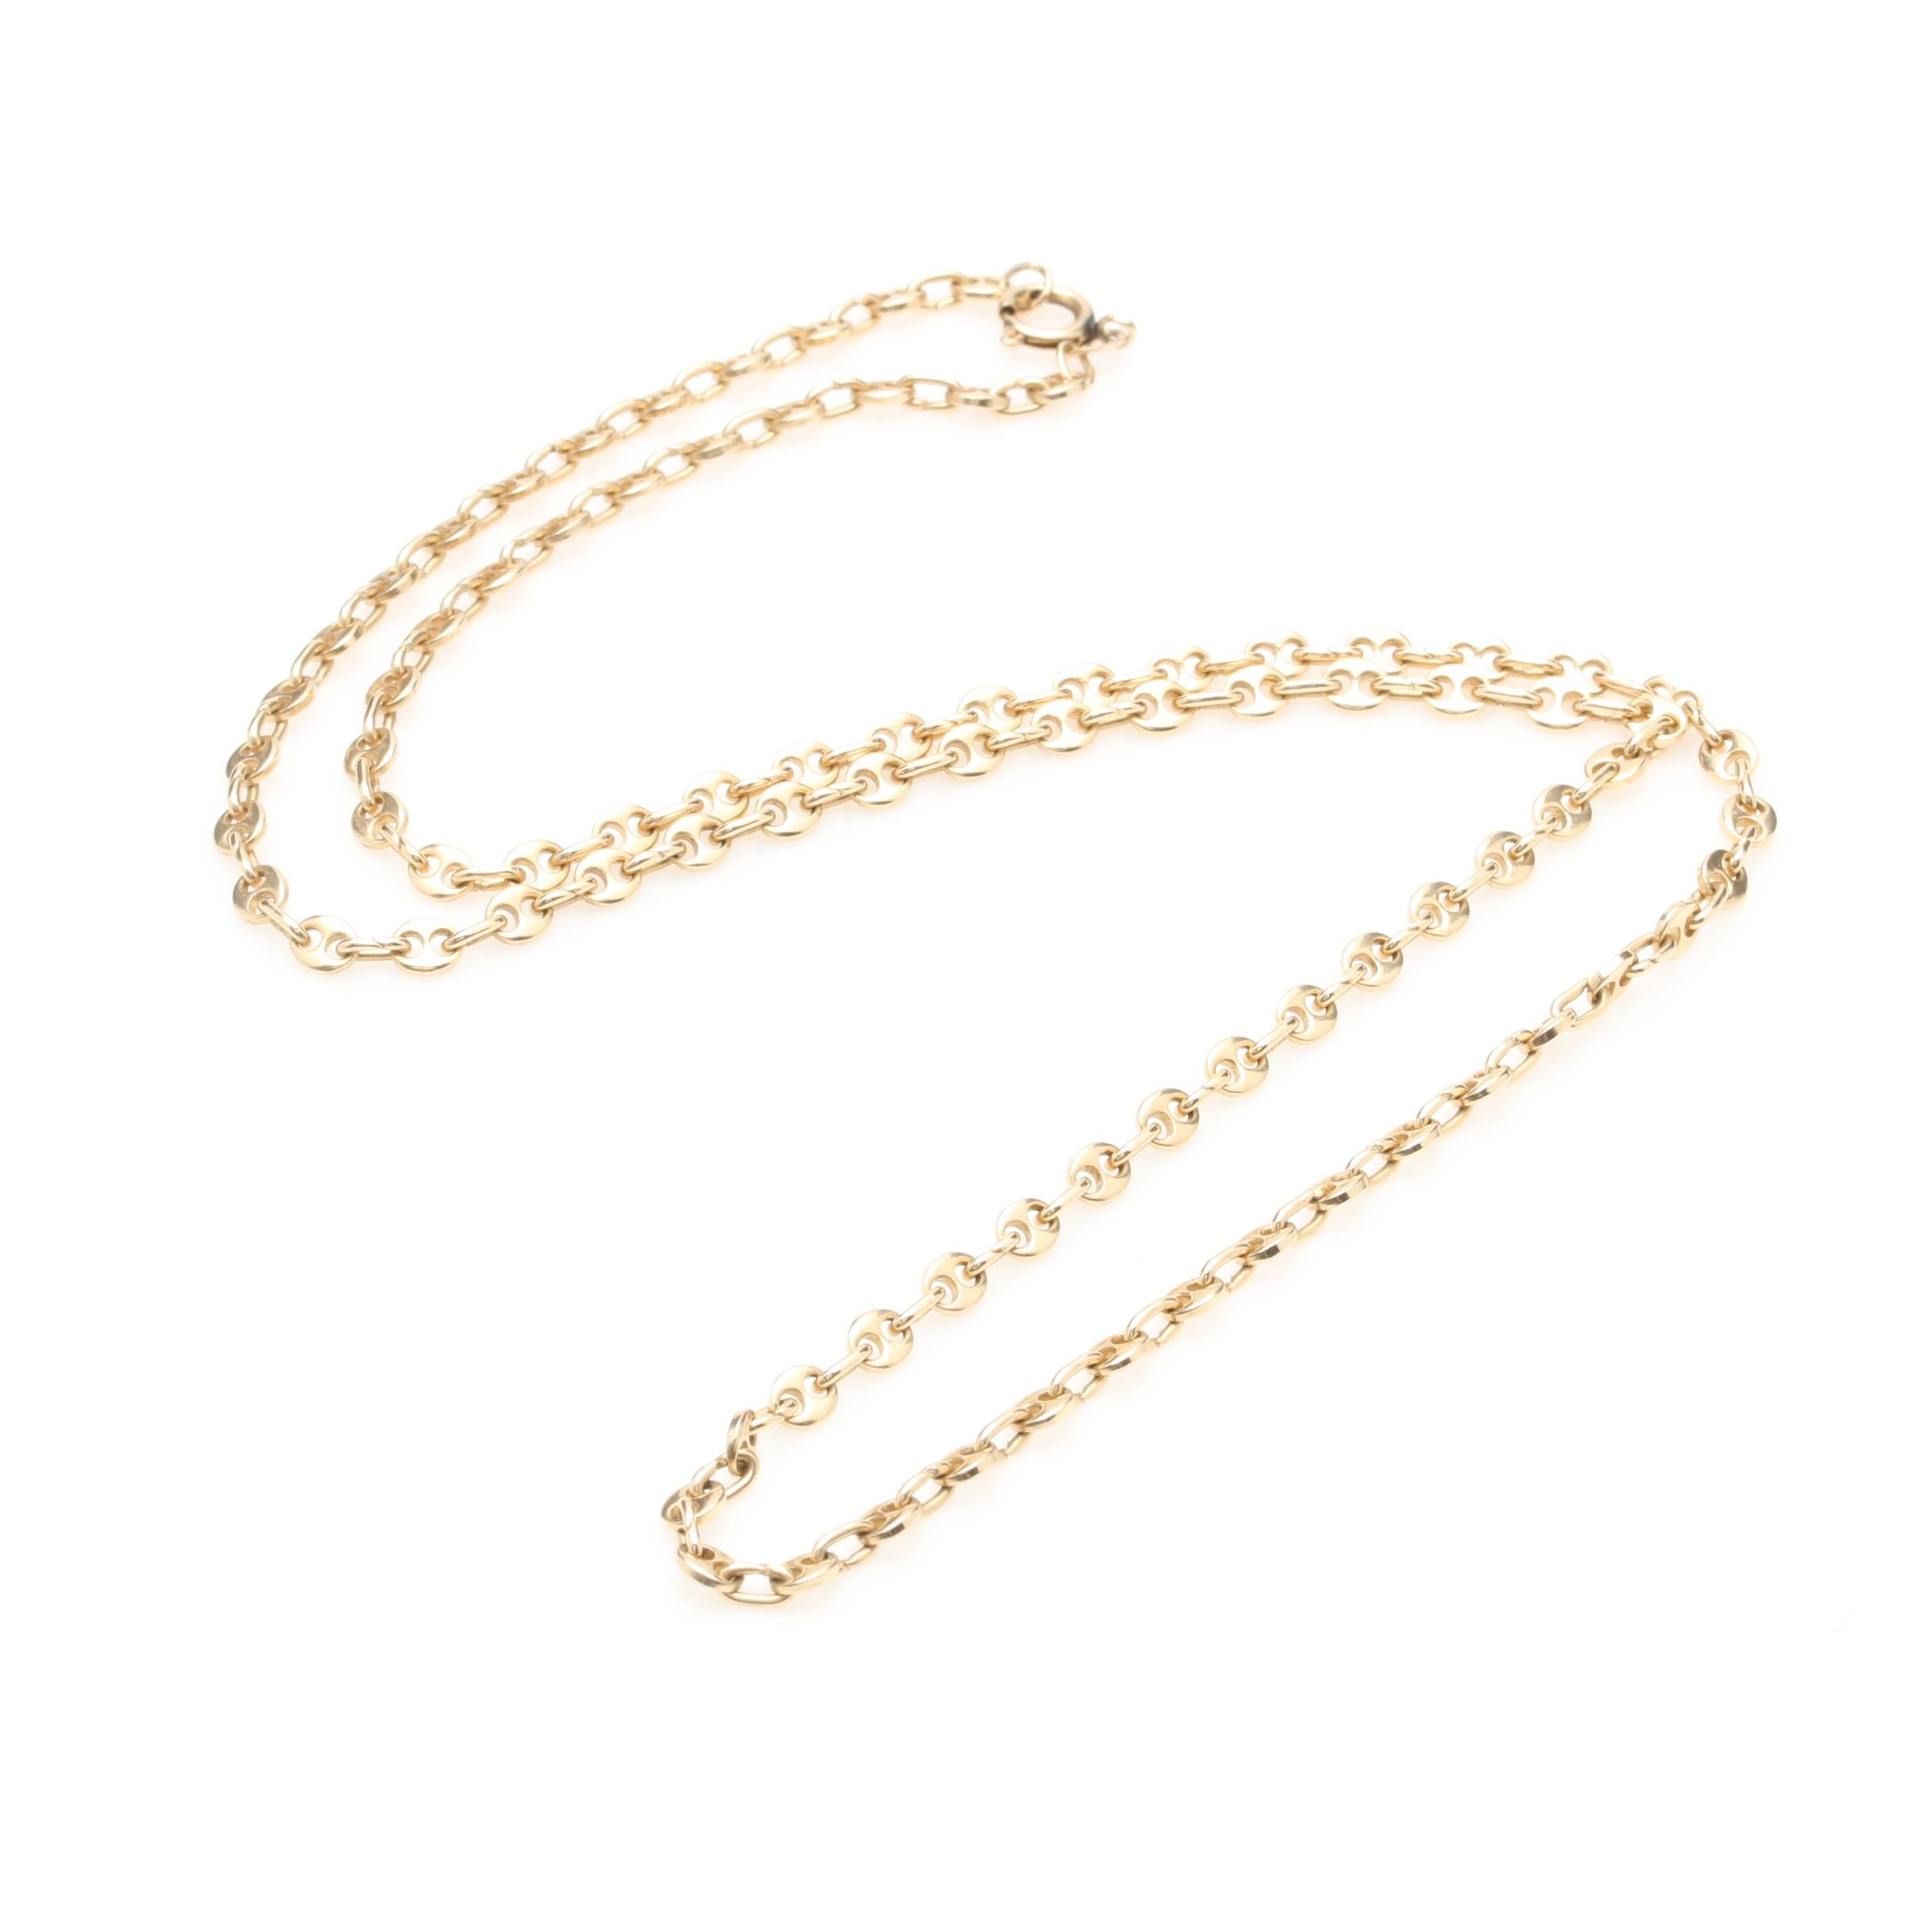 14K Yellow Gold Anchor Chain Link Necklace